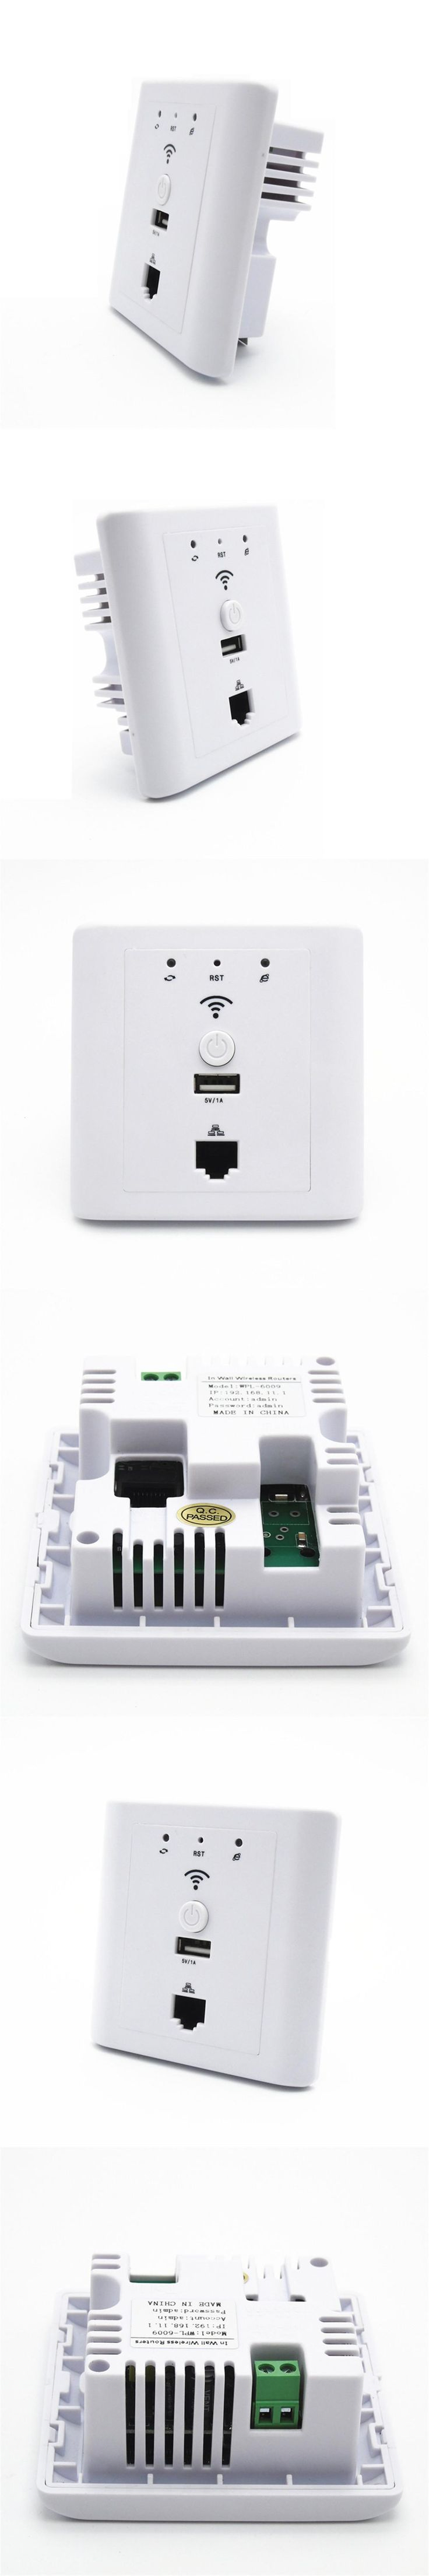 Hotel Socket Wifi in Wall Ap Router Suport Poe Usb Lan Wi-fi Wall-mount Access Point White